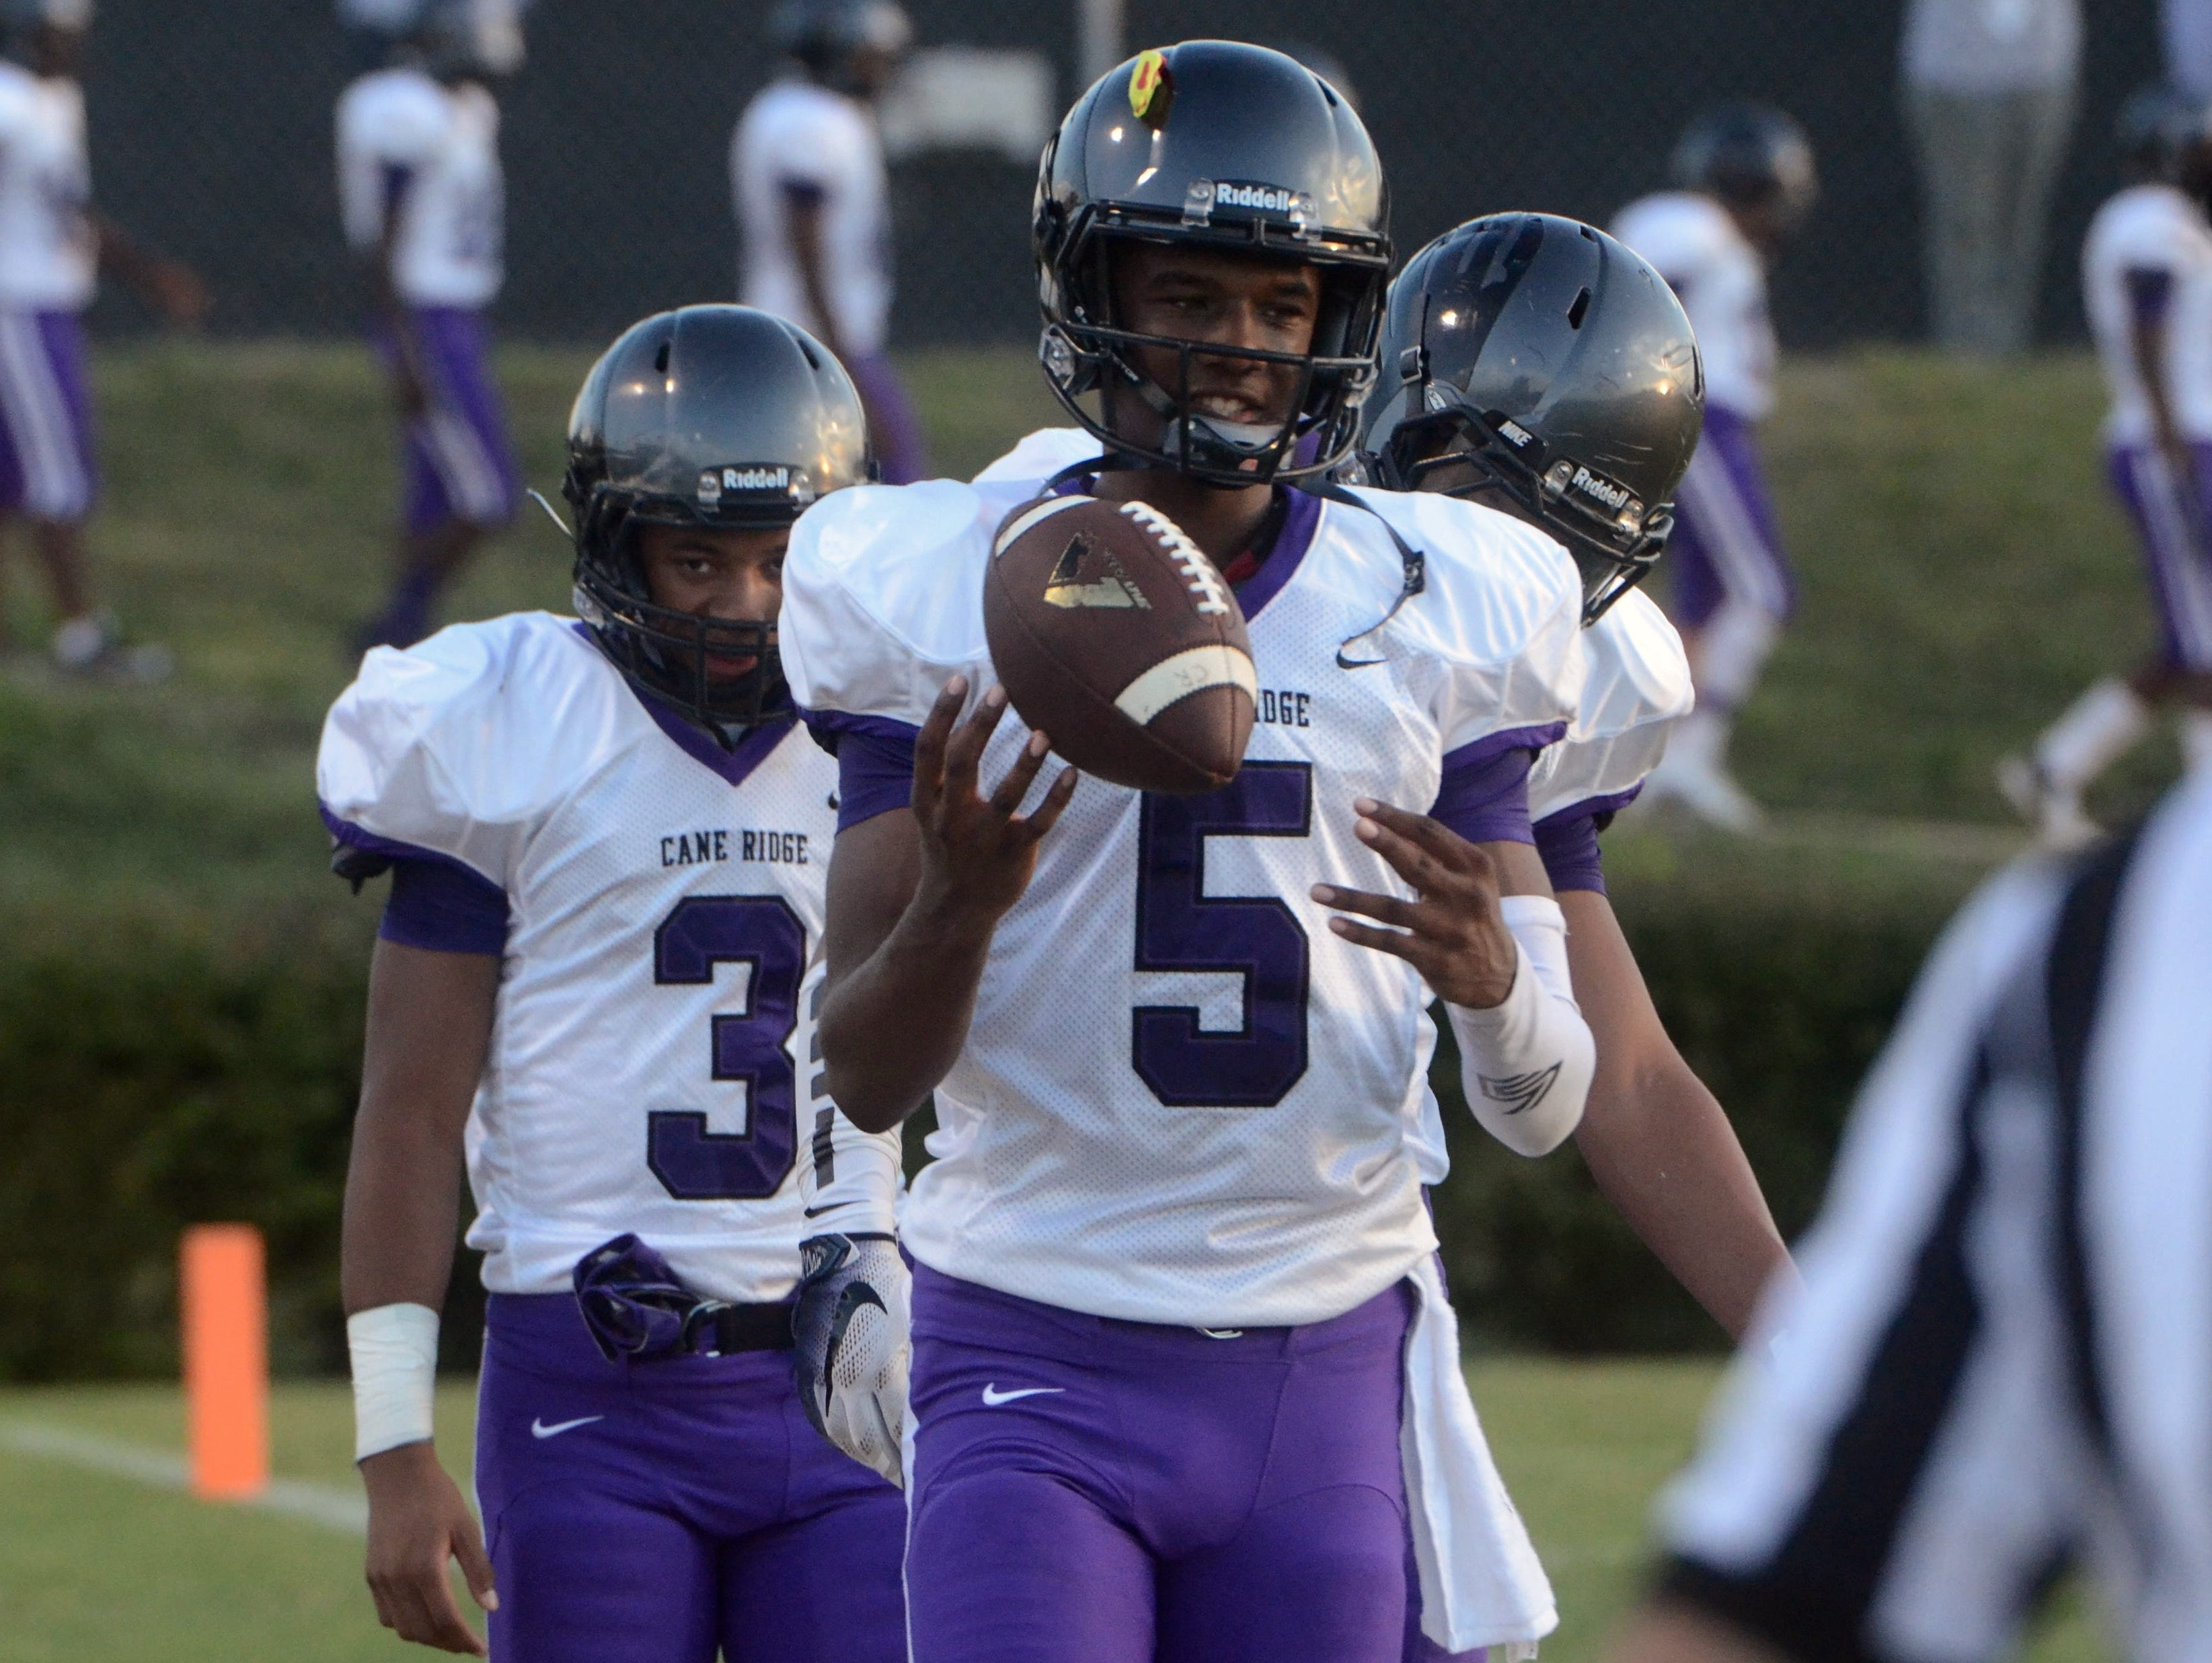 Cane Ridge captains D.J. Thorpe (5), Brandon Lewis (3) and Jordan Bell take the field prior to last Thursday's win over Mt. Juliet.